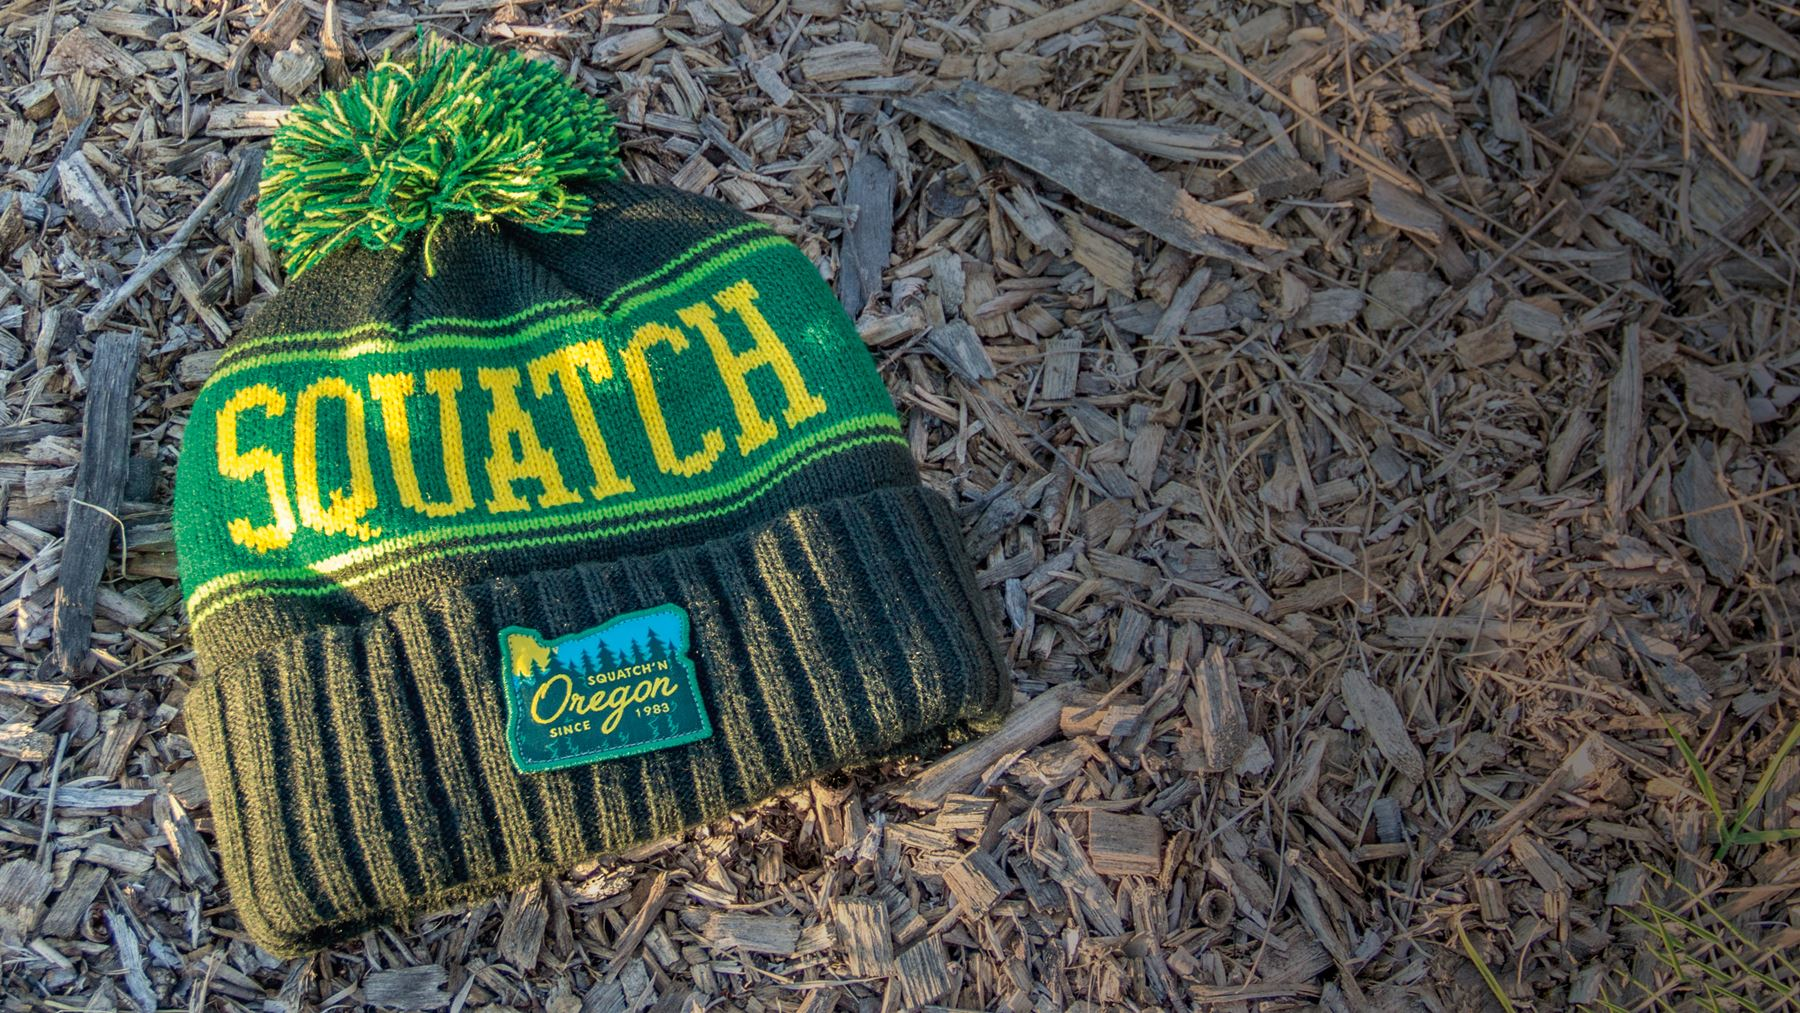 Toboggan / Vintage Knit hat laying on a bed of mulch